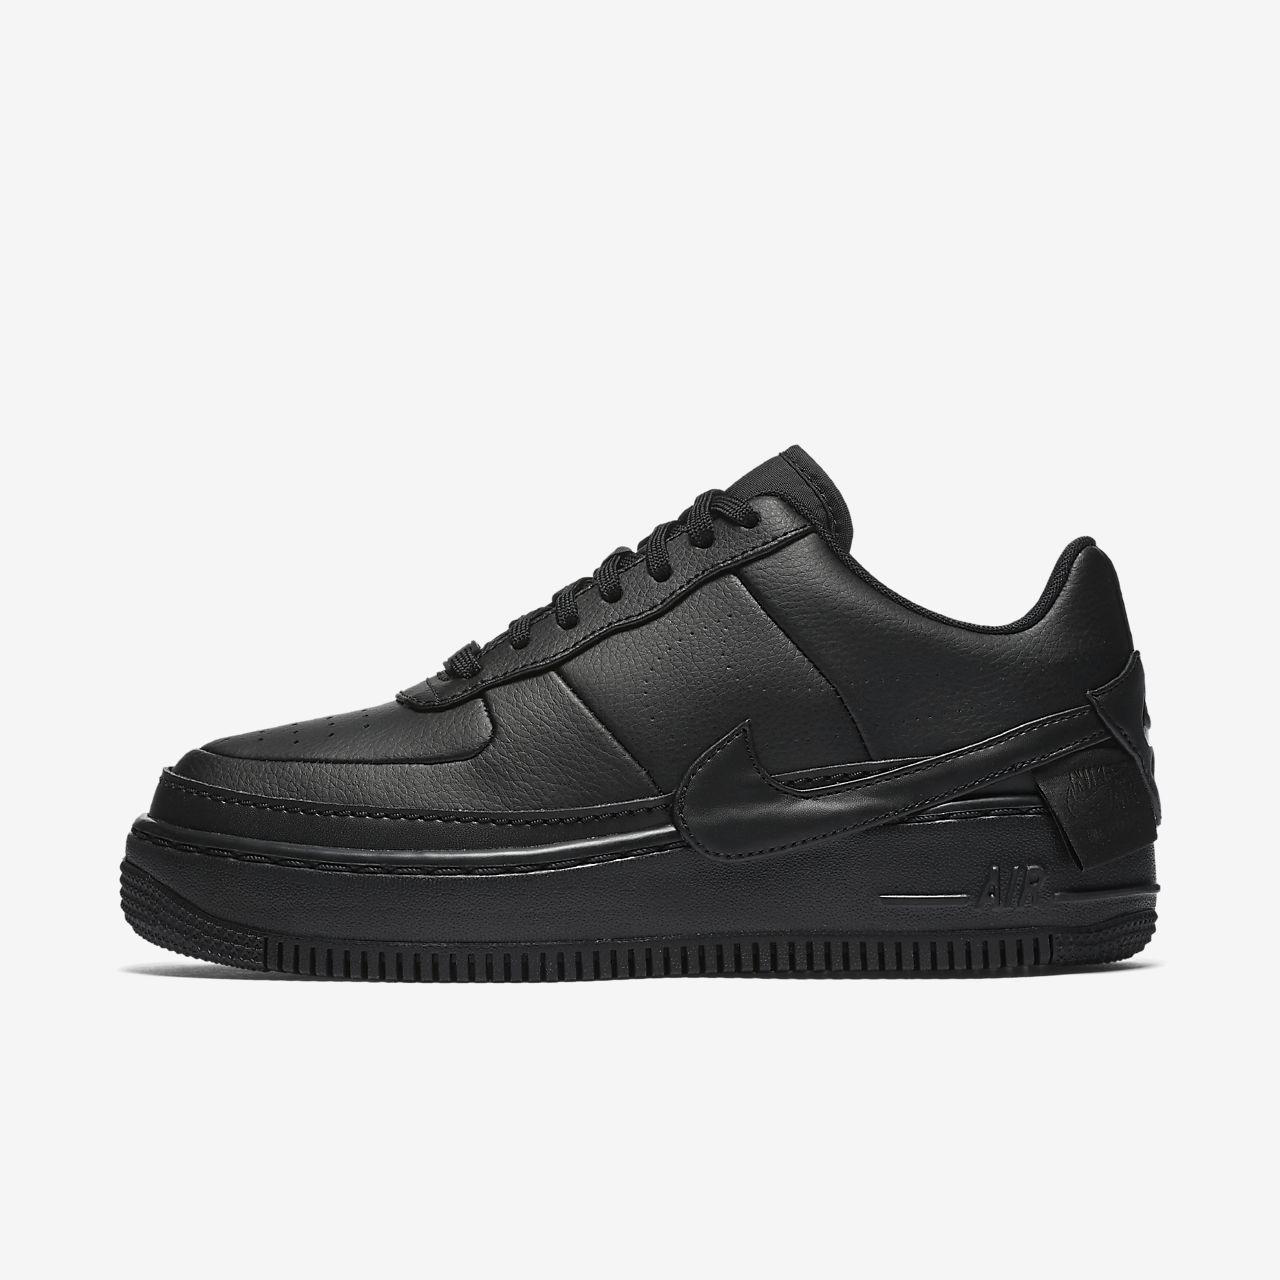 hot sale online 3abaa ab0fb scarpa nike air force 1 jester xx nero nero nero ao1220-001